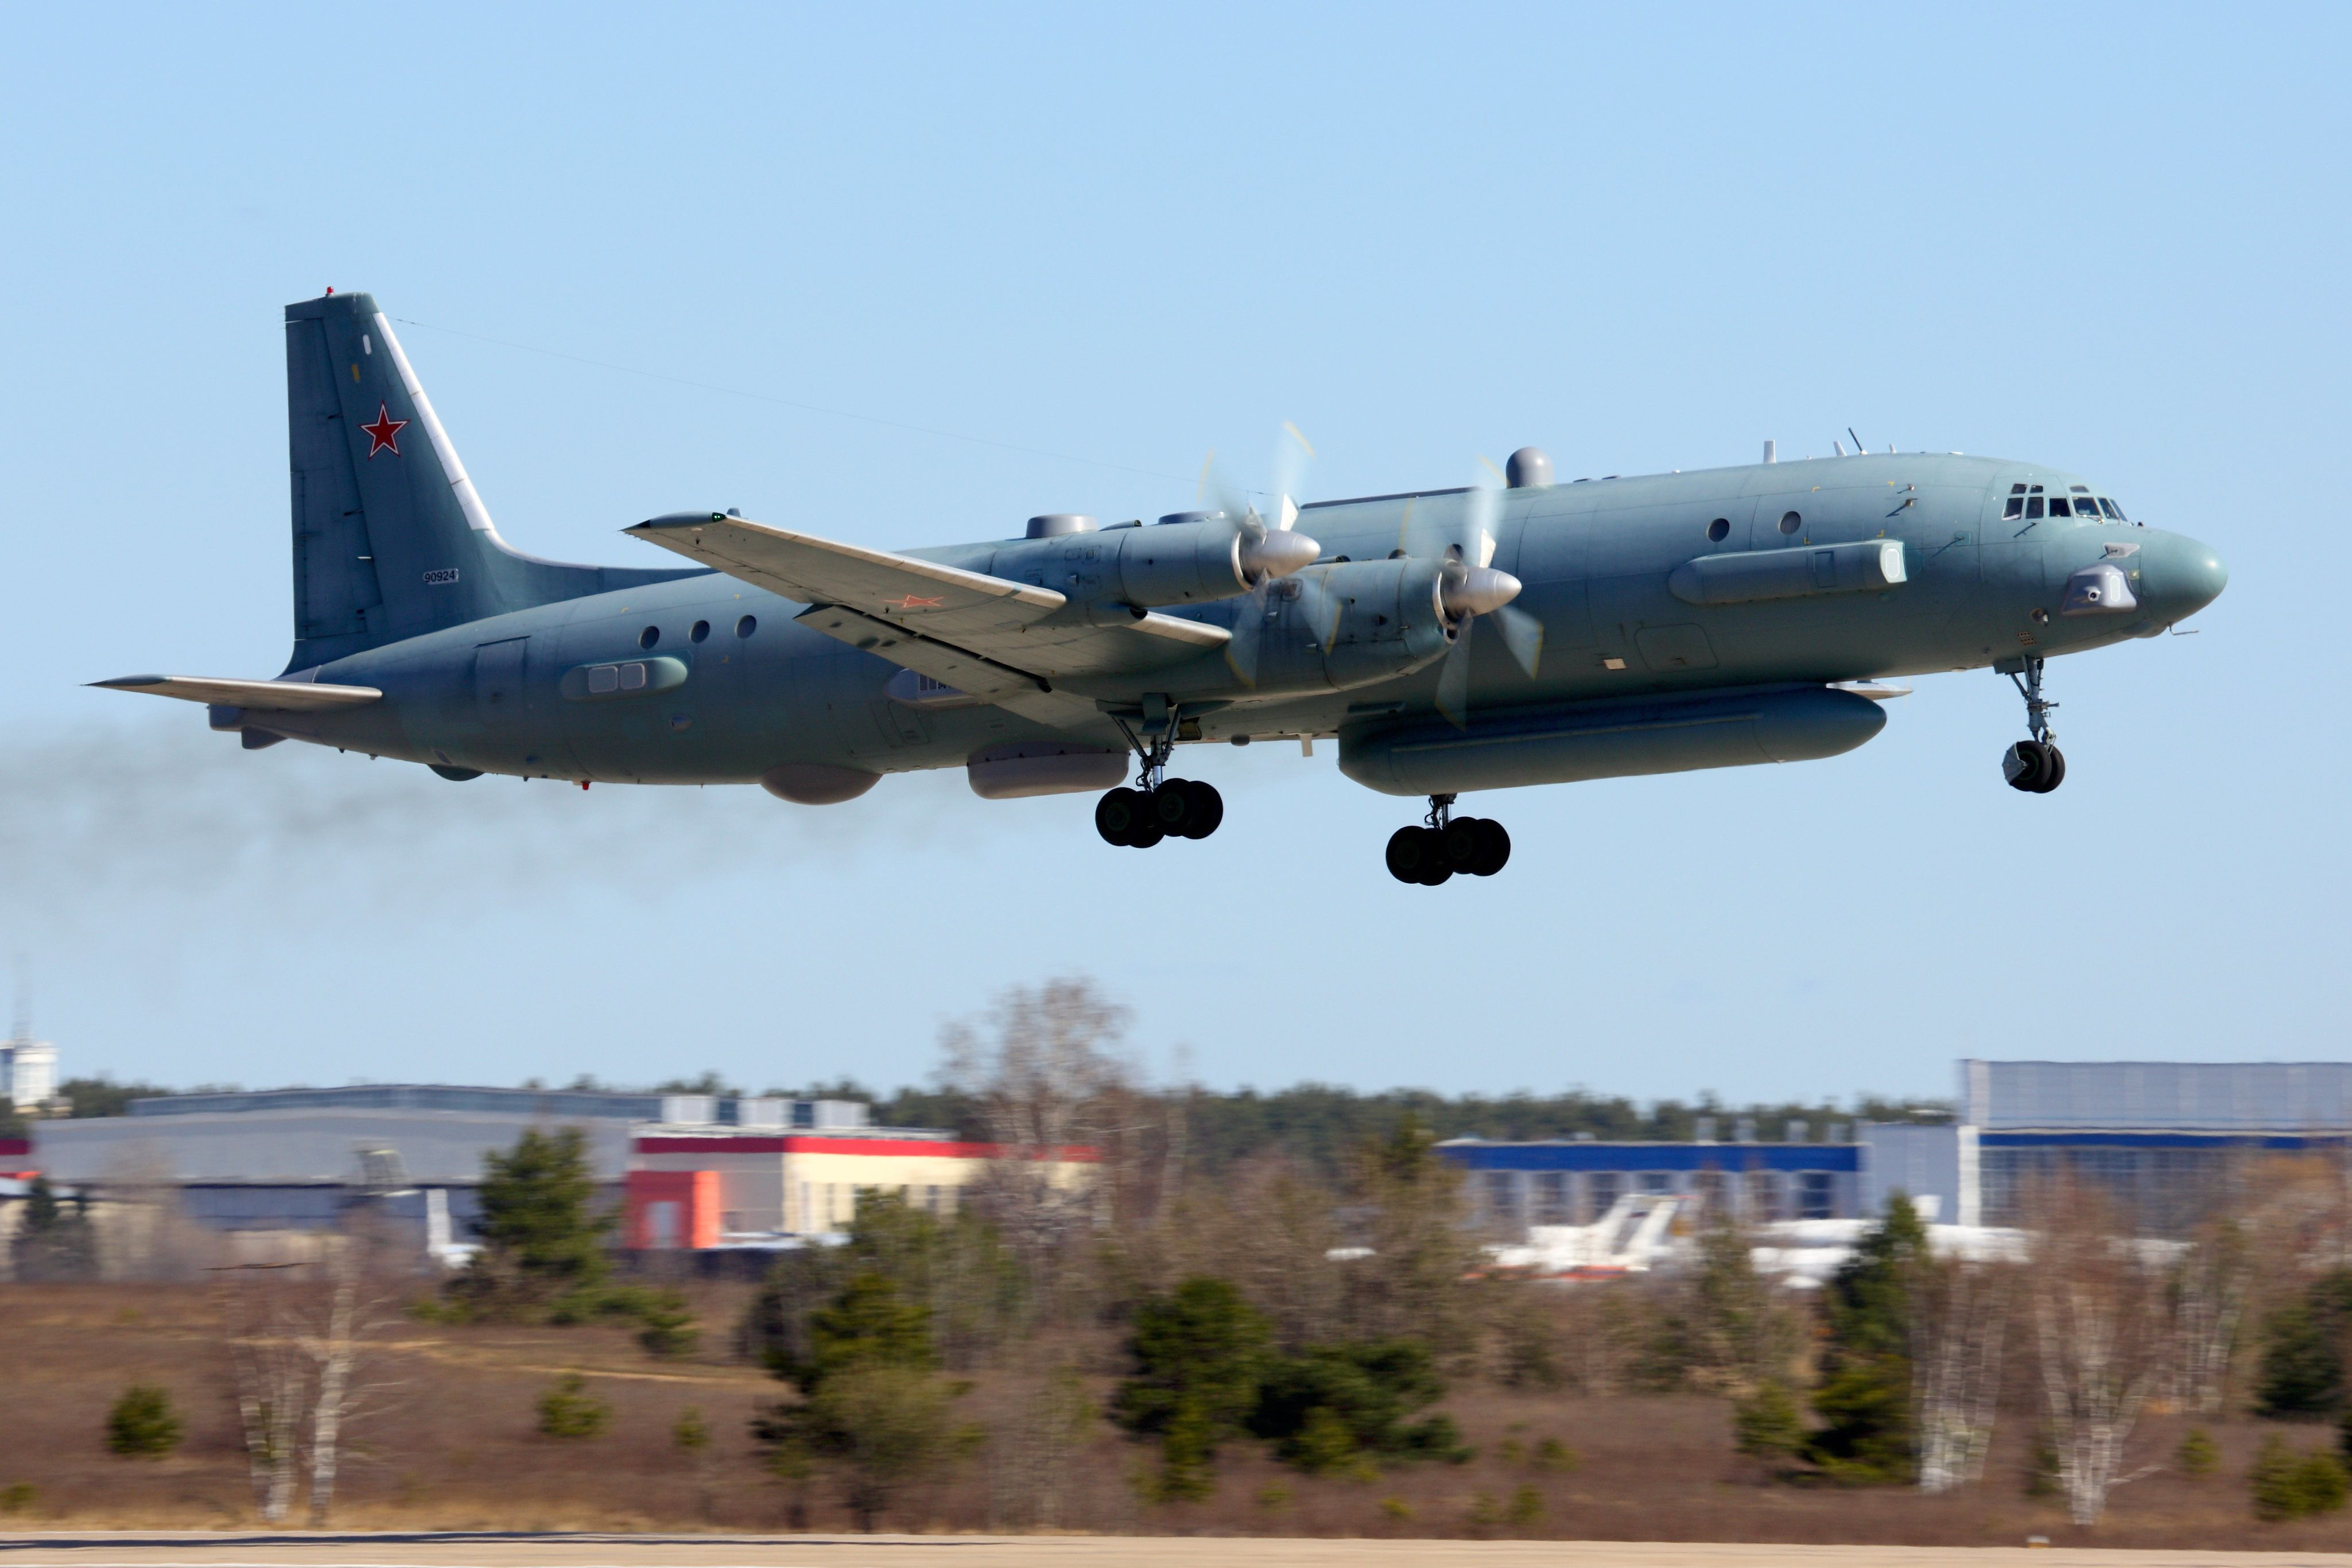 Missile Downs Russian Military Jet Over Mediterranean, Killing All 15 On